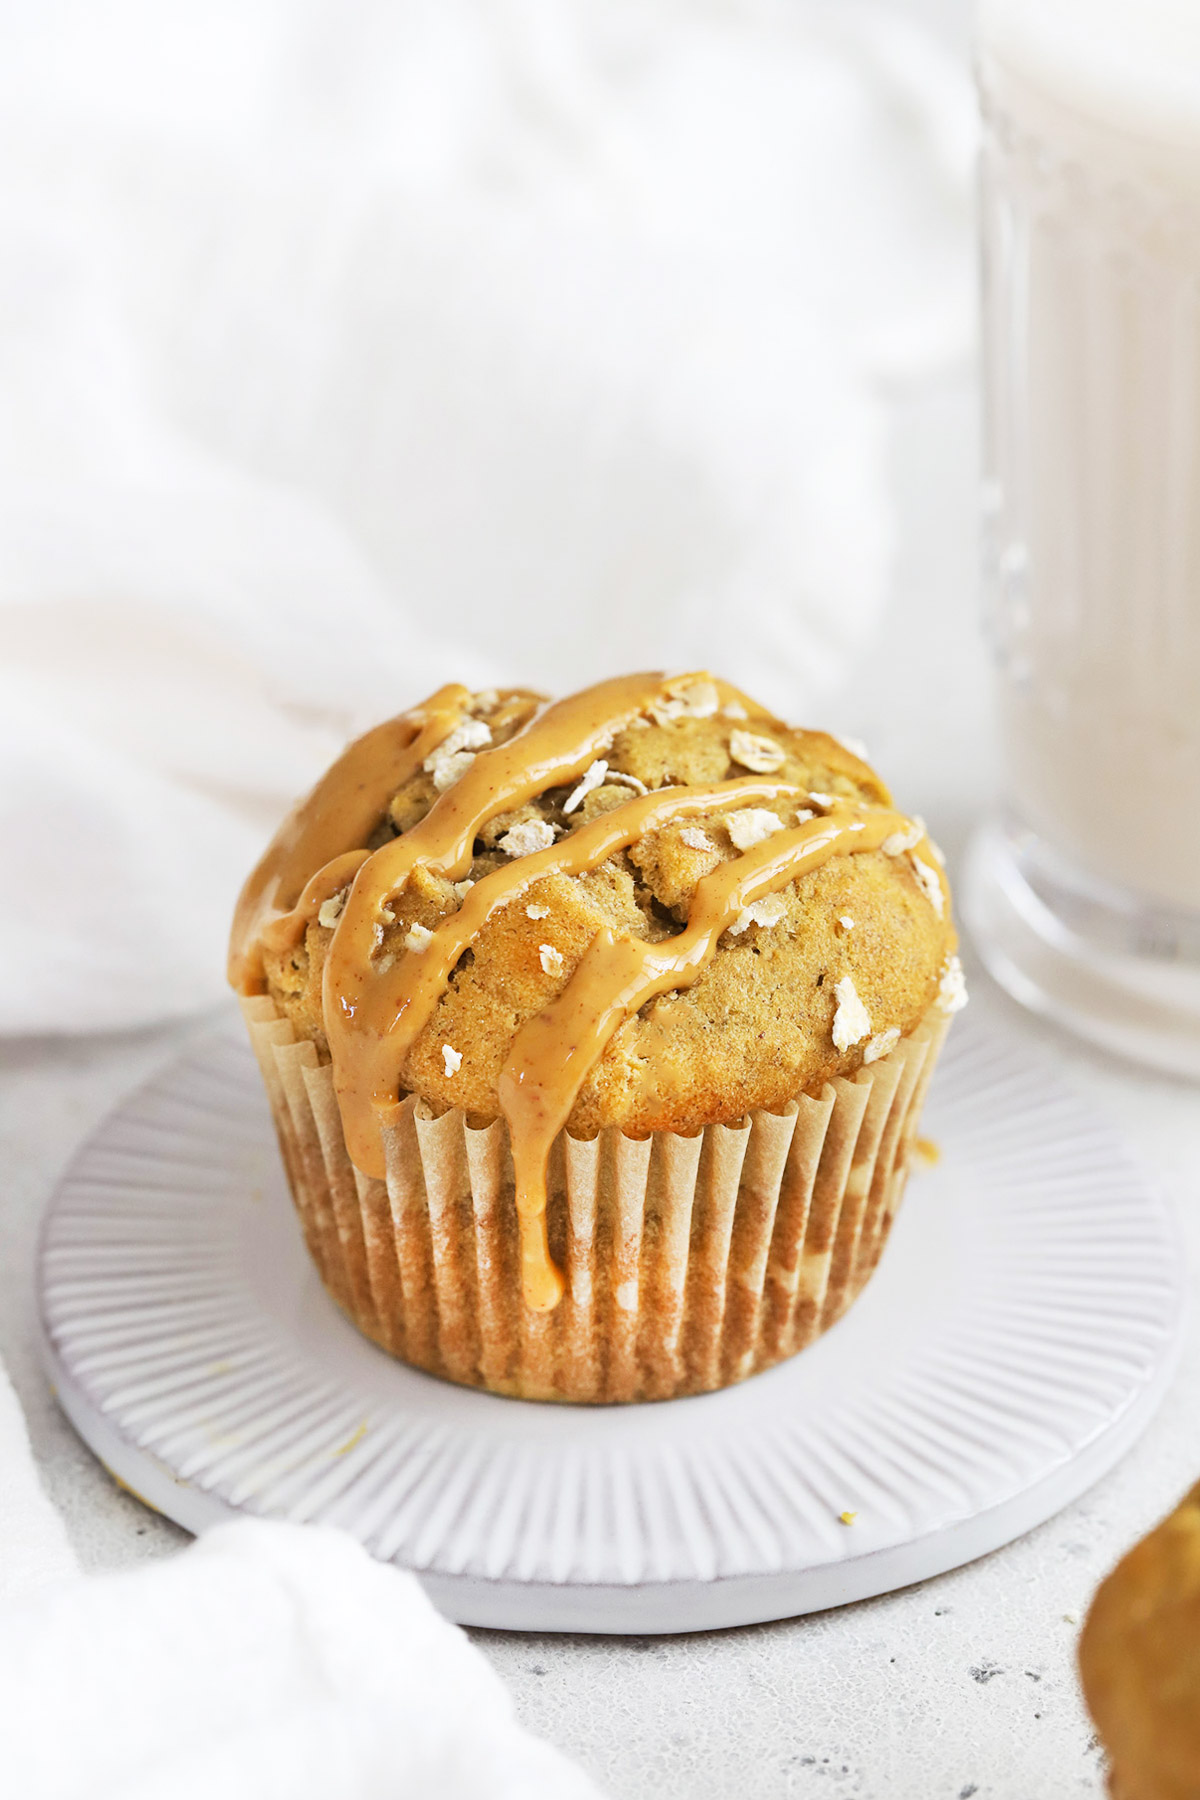 Front view of a gluten-free banana muffin drizzled with natural peanut butter